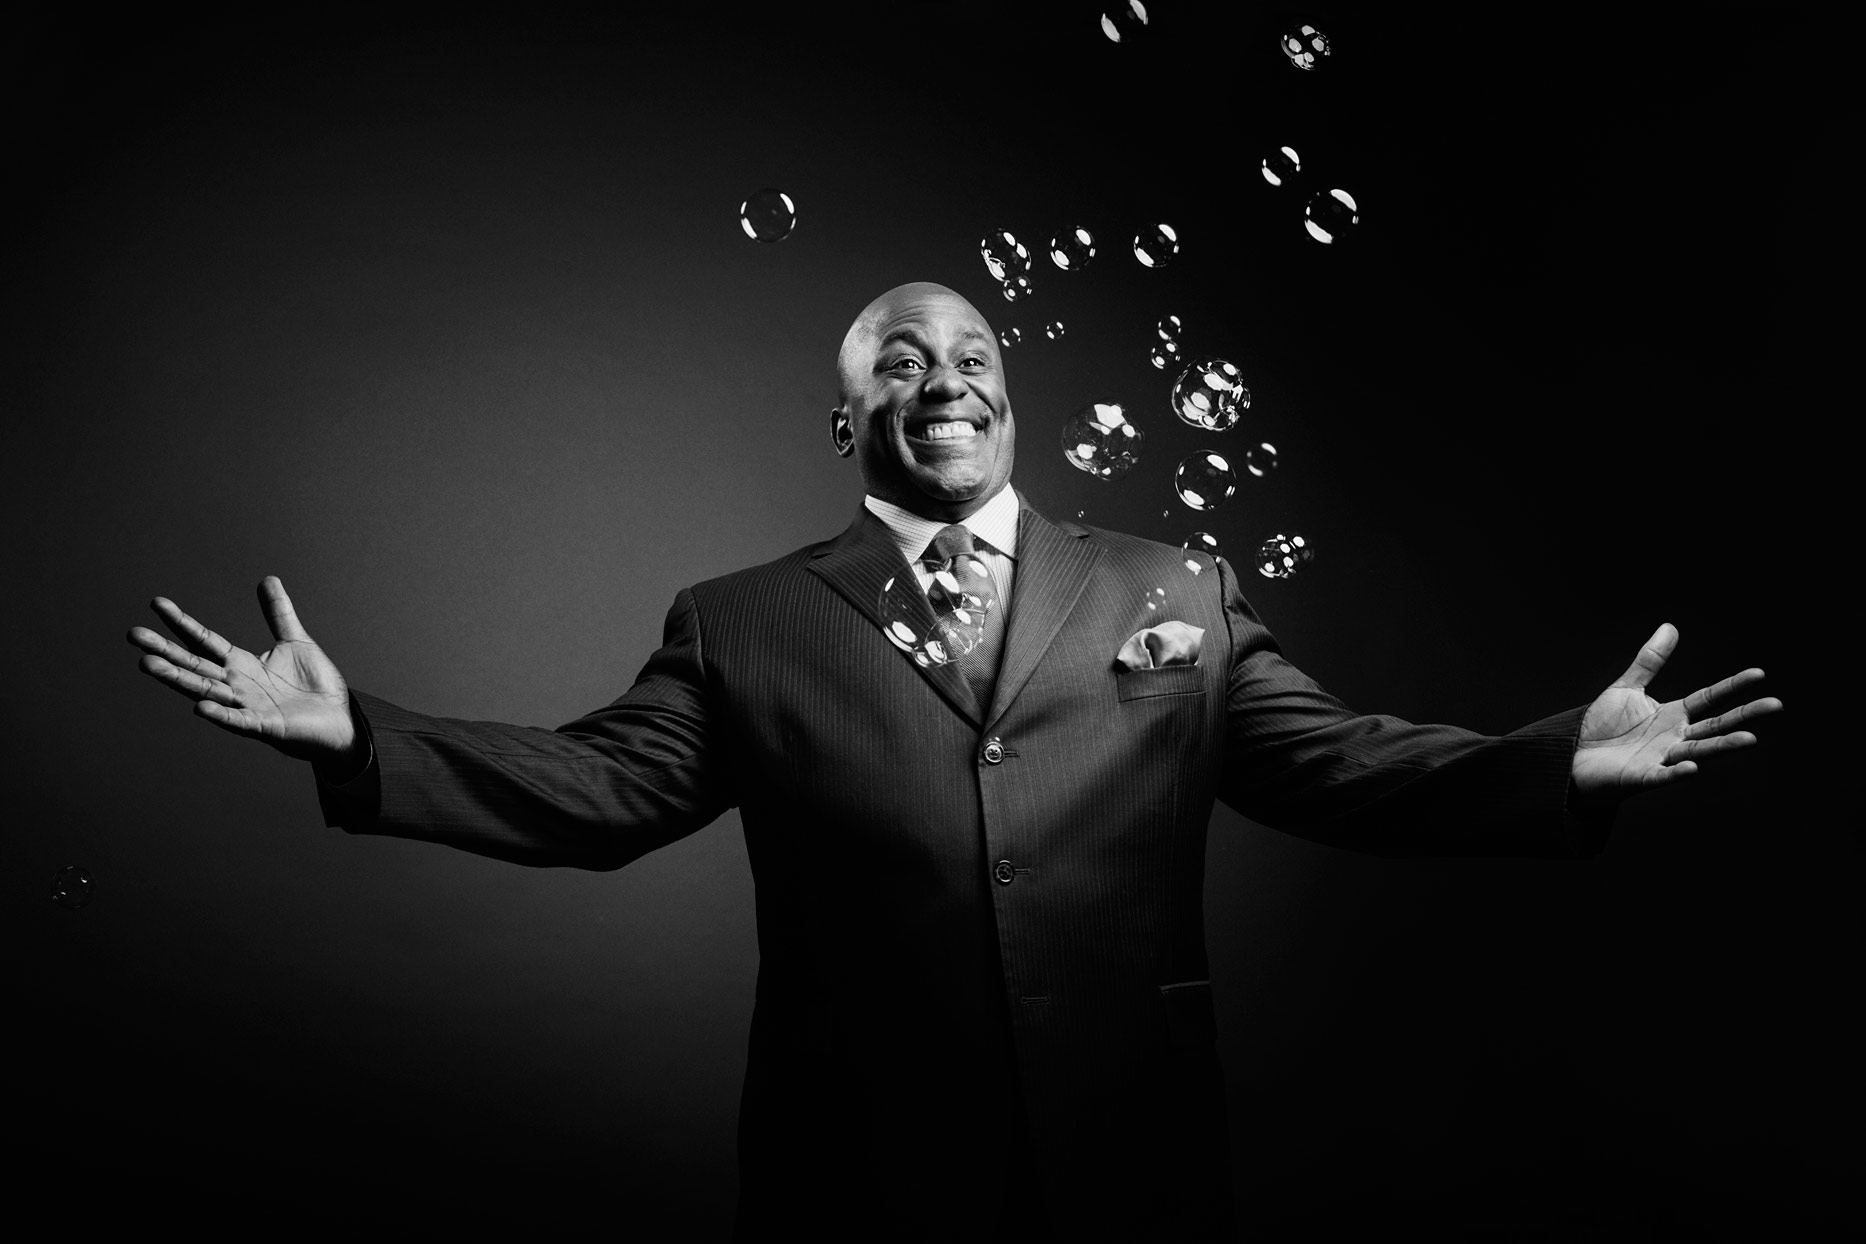 Mark DeLong - Celebrity Photographer - Actor with arms spread wide with bubbles in front of him.